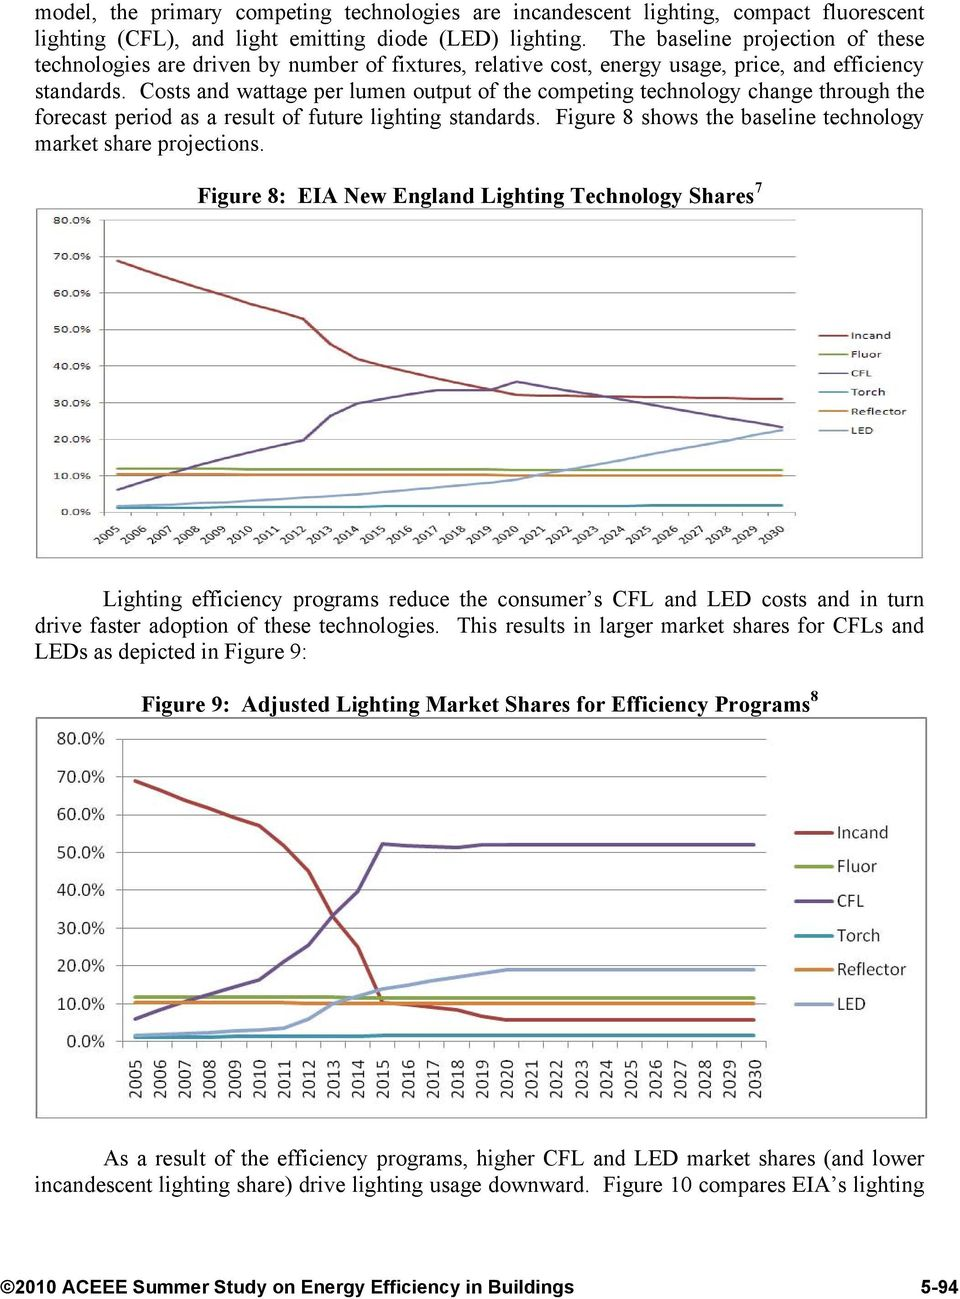 Costs and wattage per lumen output of the competing technology change through the forecast period as a result of future lighting standards.